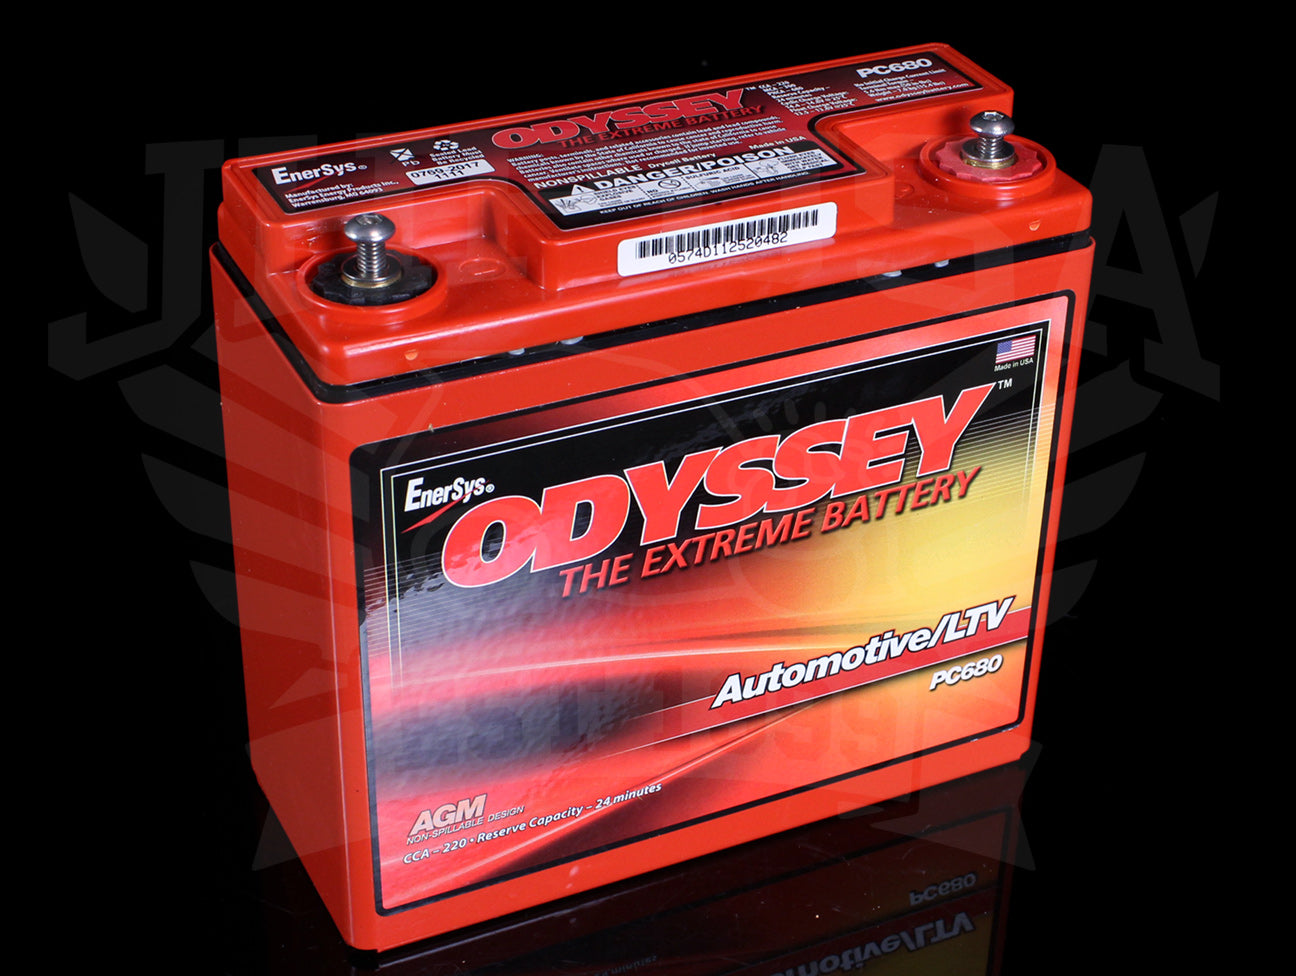 Odyssey Drycell Metal Jacket Battery PC680